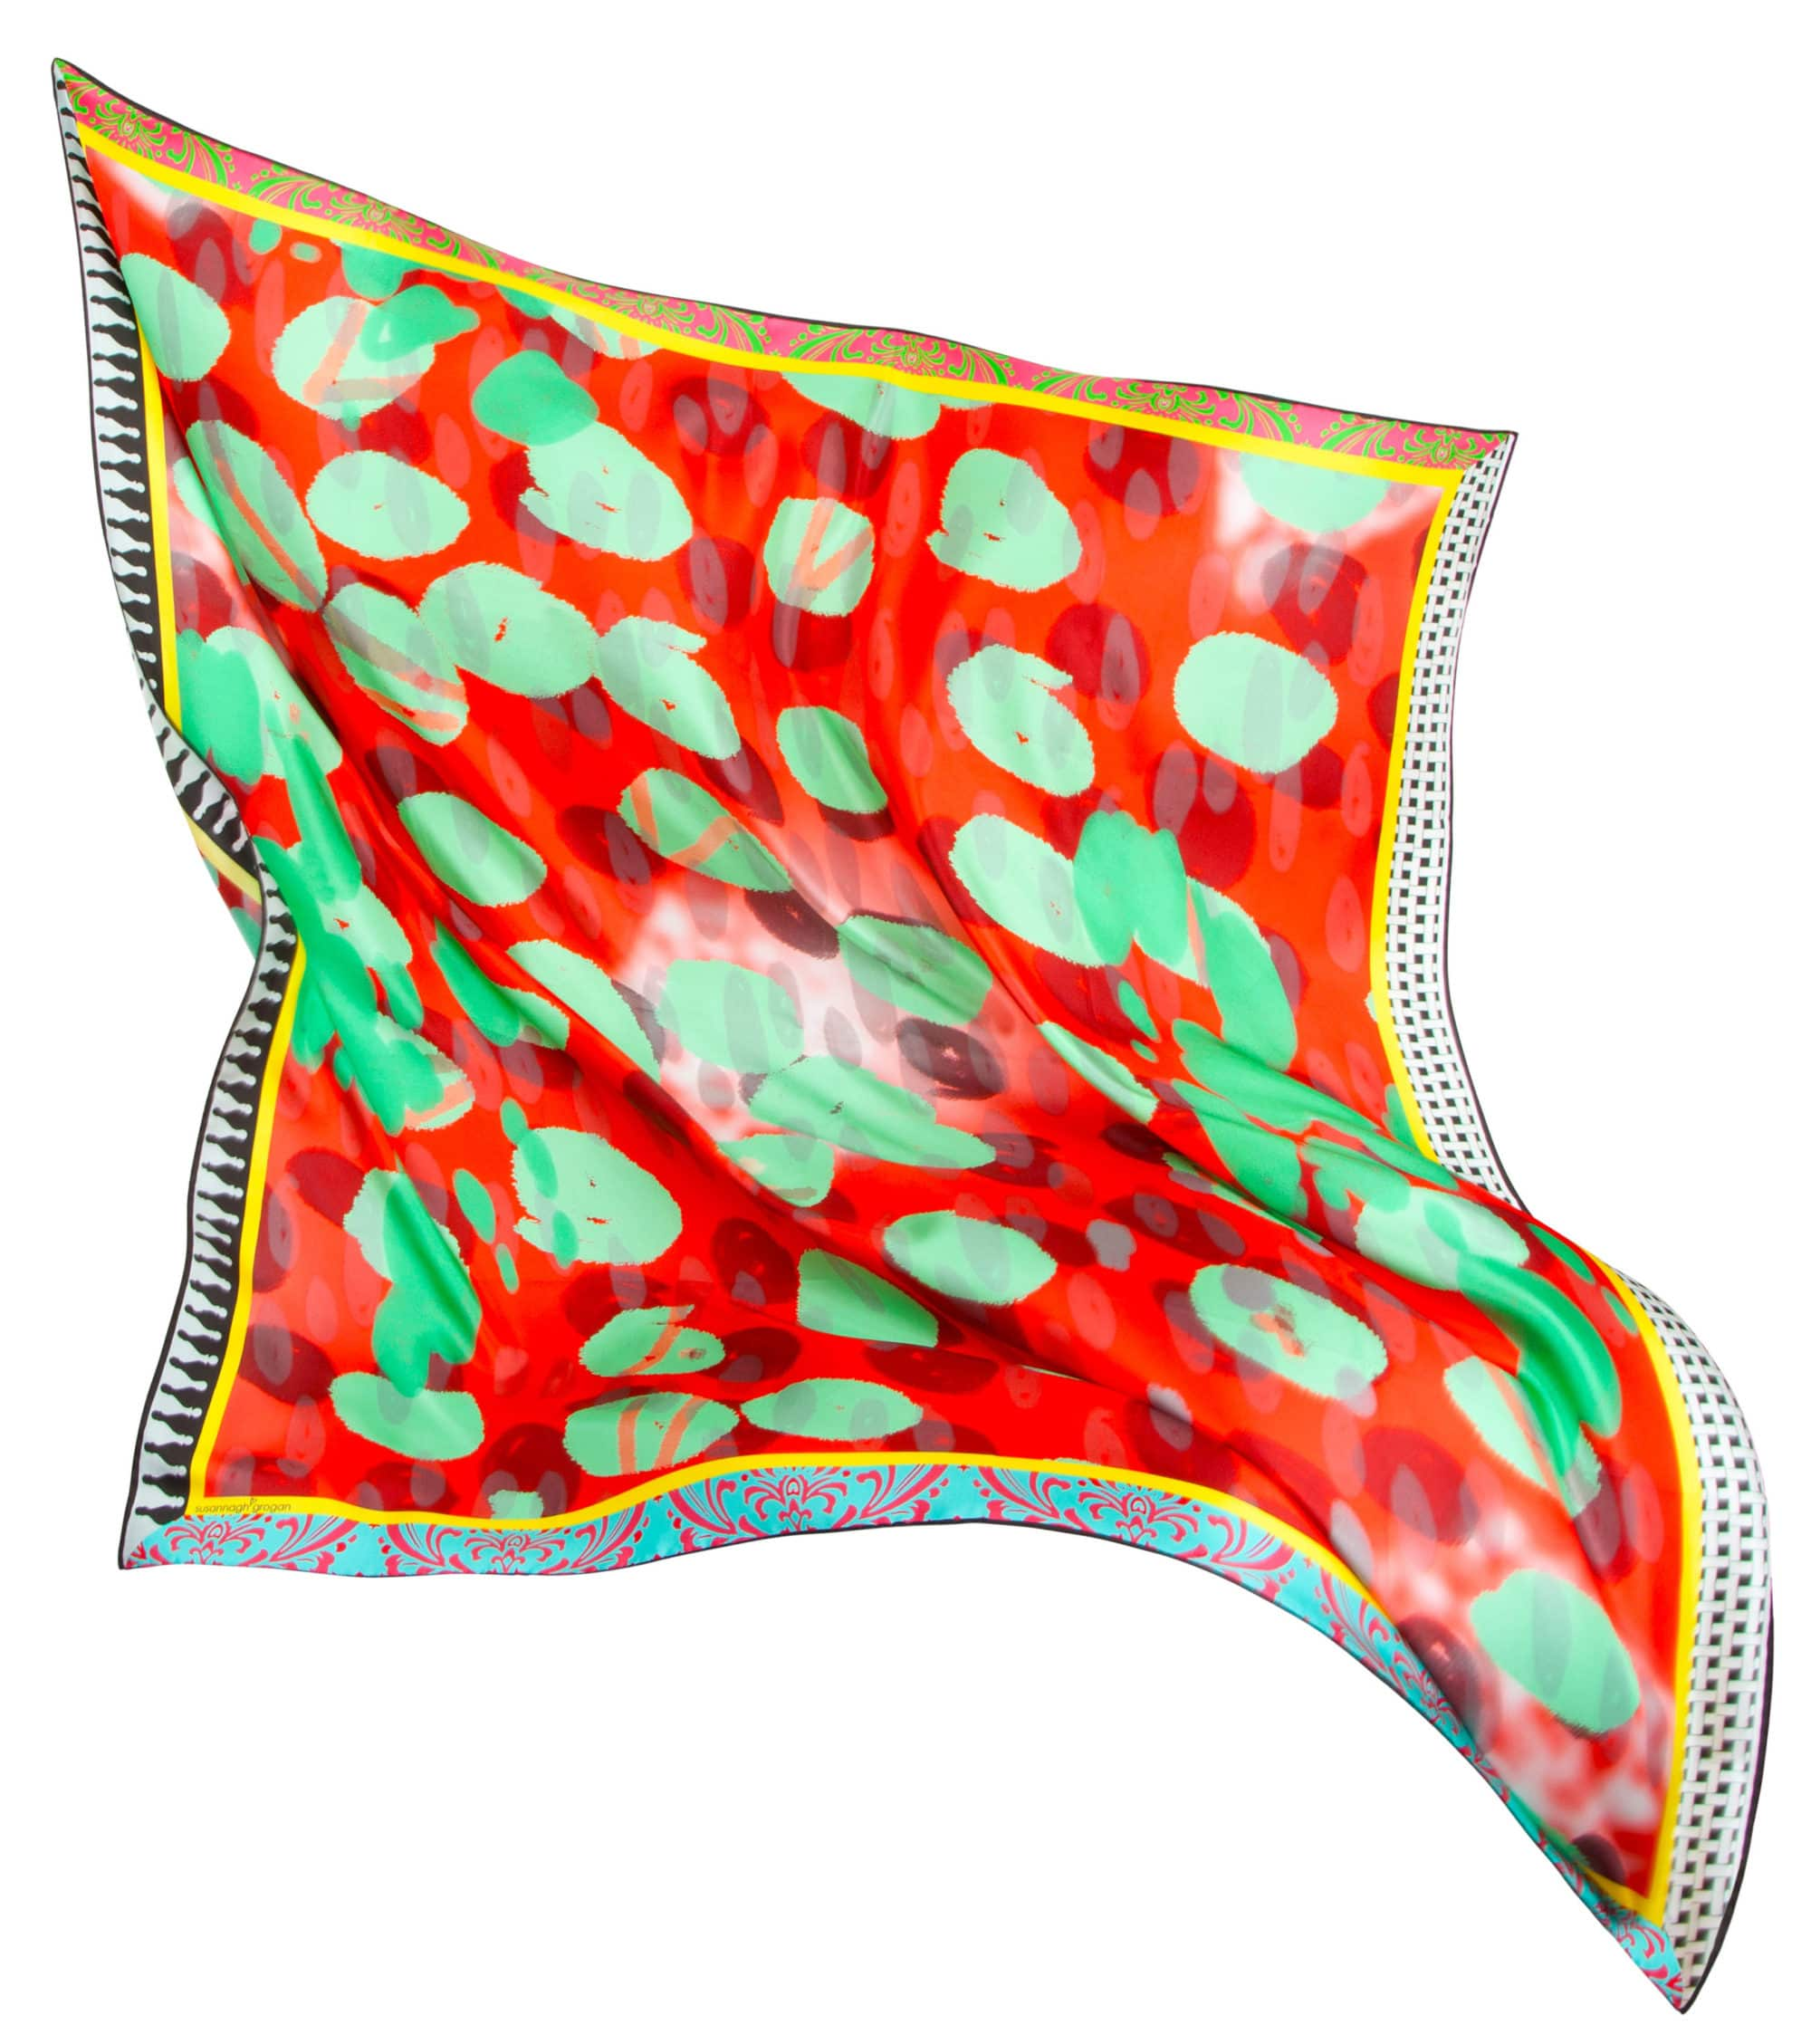 Susannagh Grogan Silk Scarf Orange, Coral Watermelon Scarf